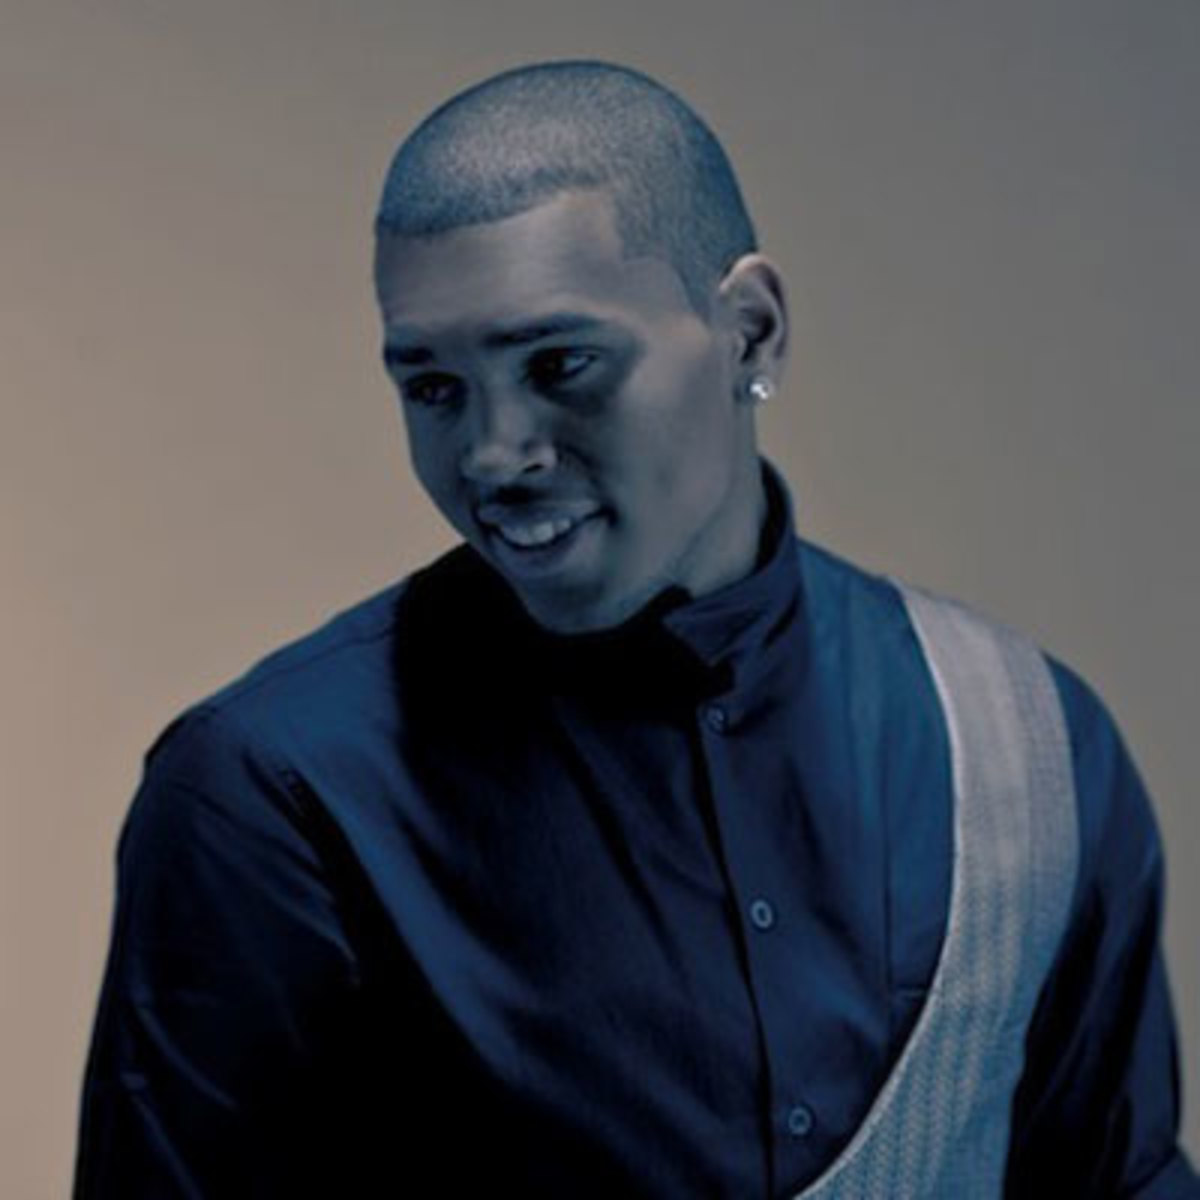 chrisbrown2.jpg